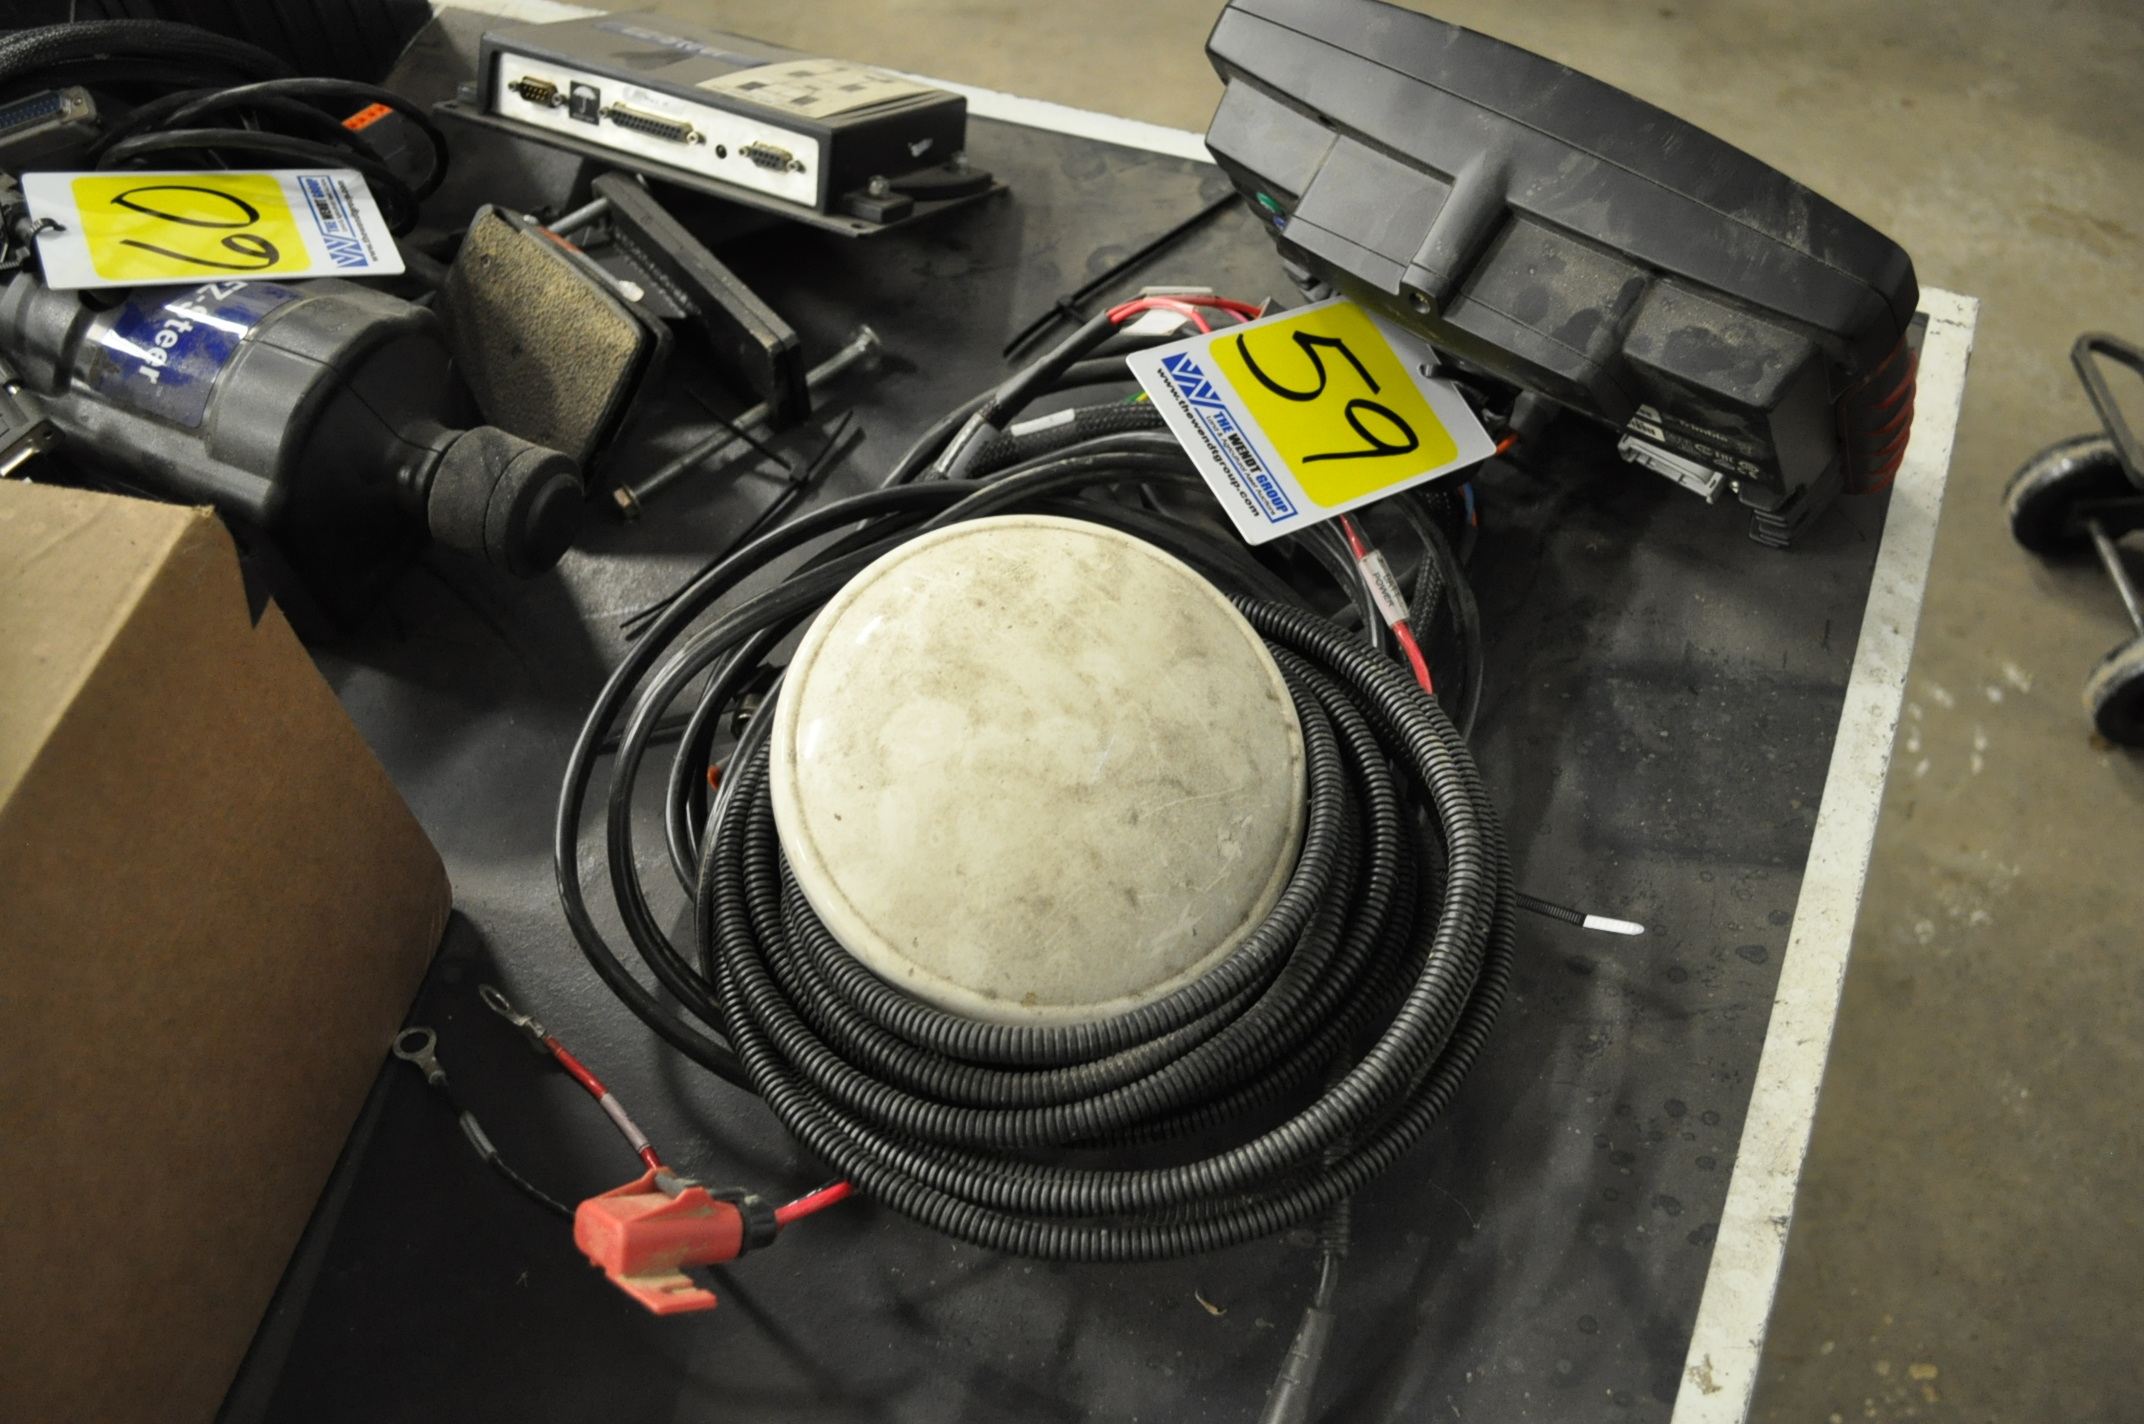 Case IH FM-750 GPS receiver, AG-25 antenna, RangePoint RTX, SN 5839571782 - Image 3 of 6